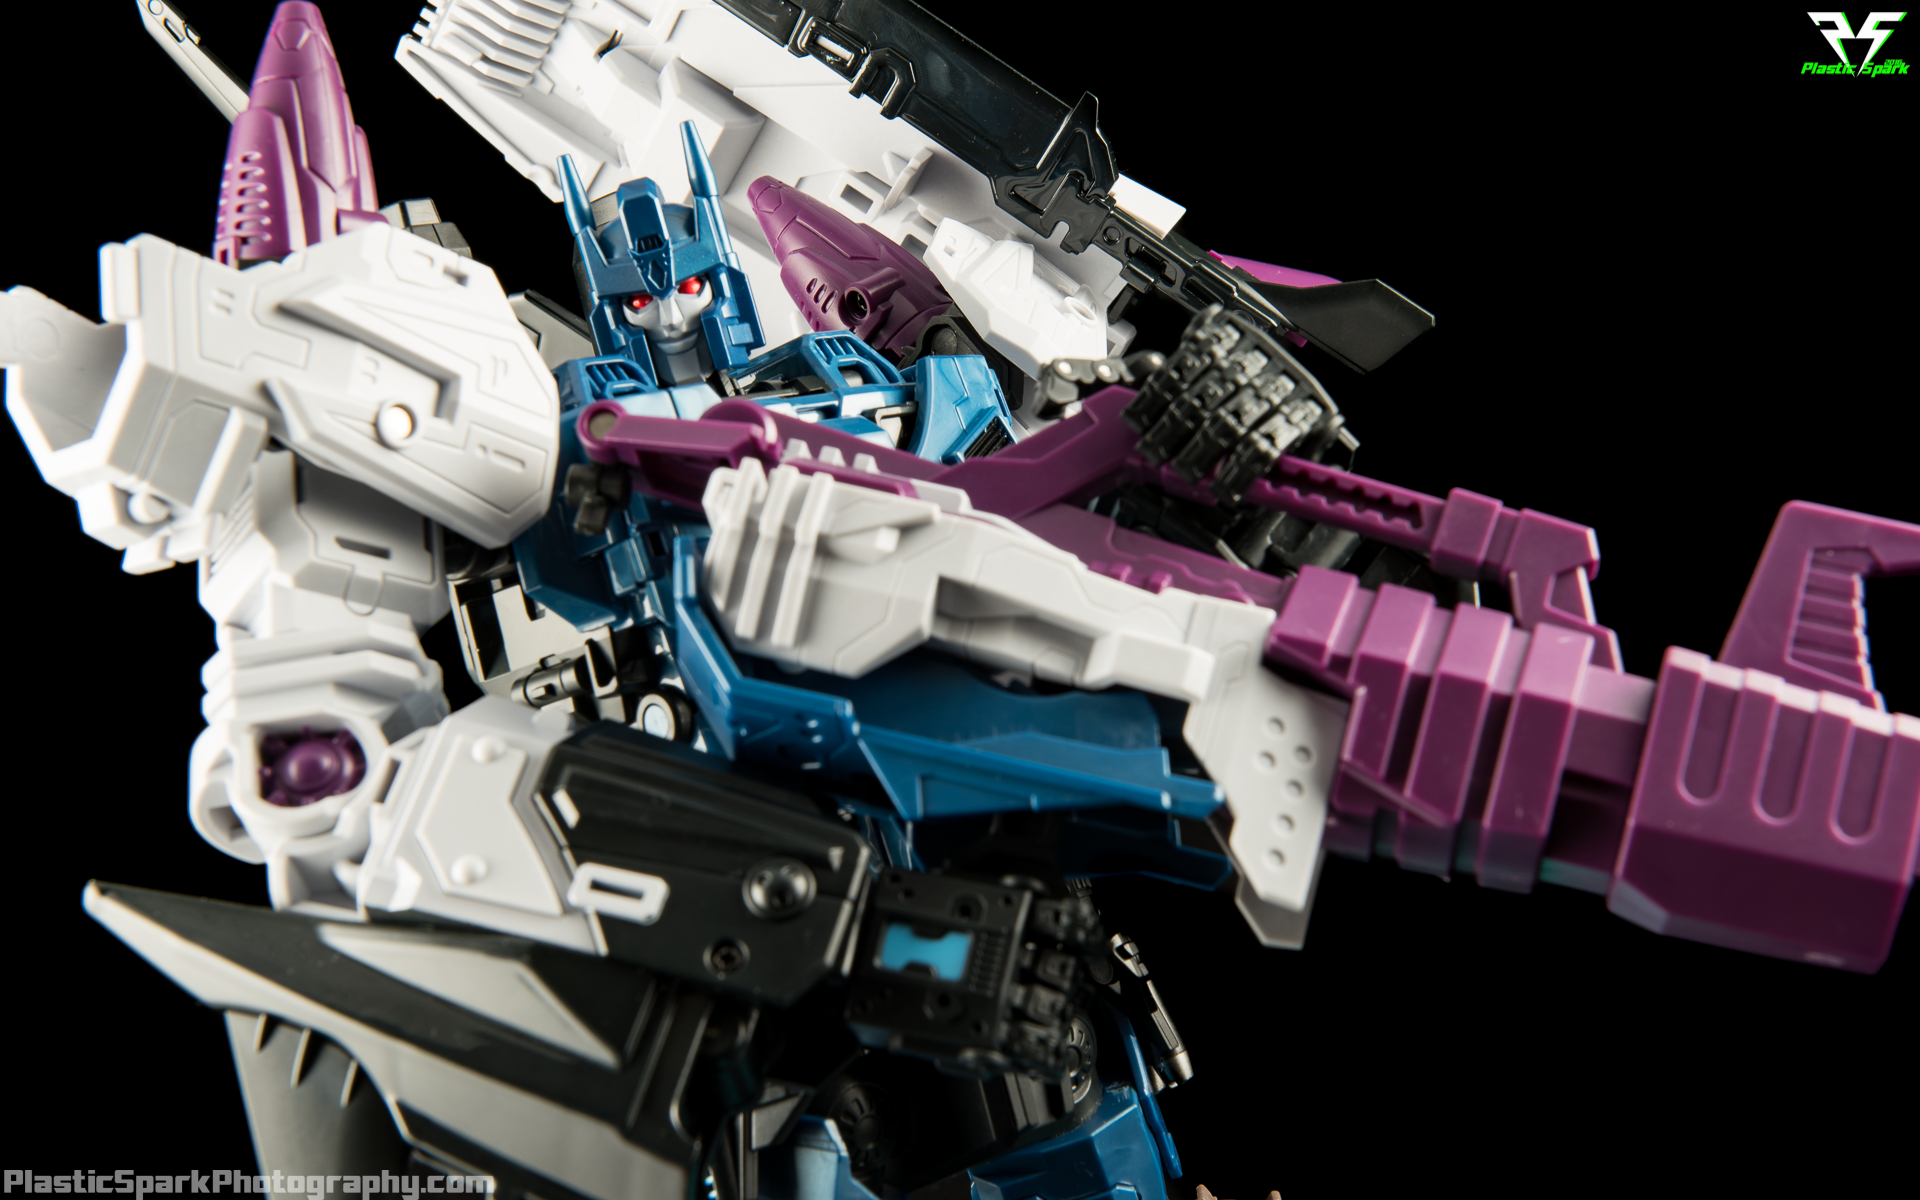 Mastemind-Creations-R17-Carnifex-(42-of-54).png